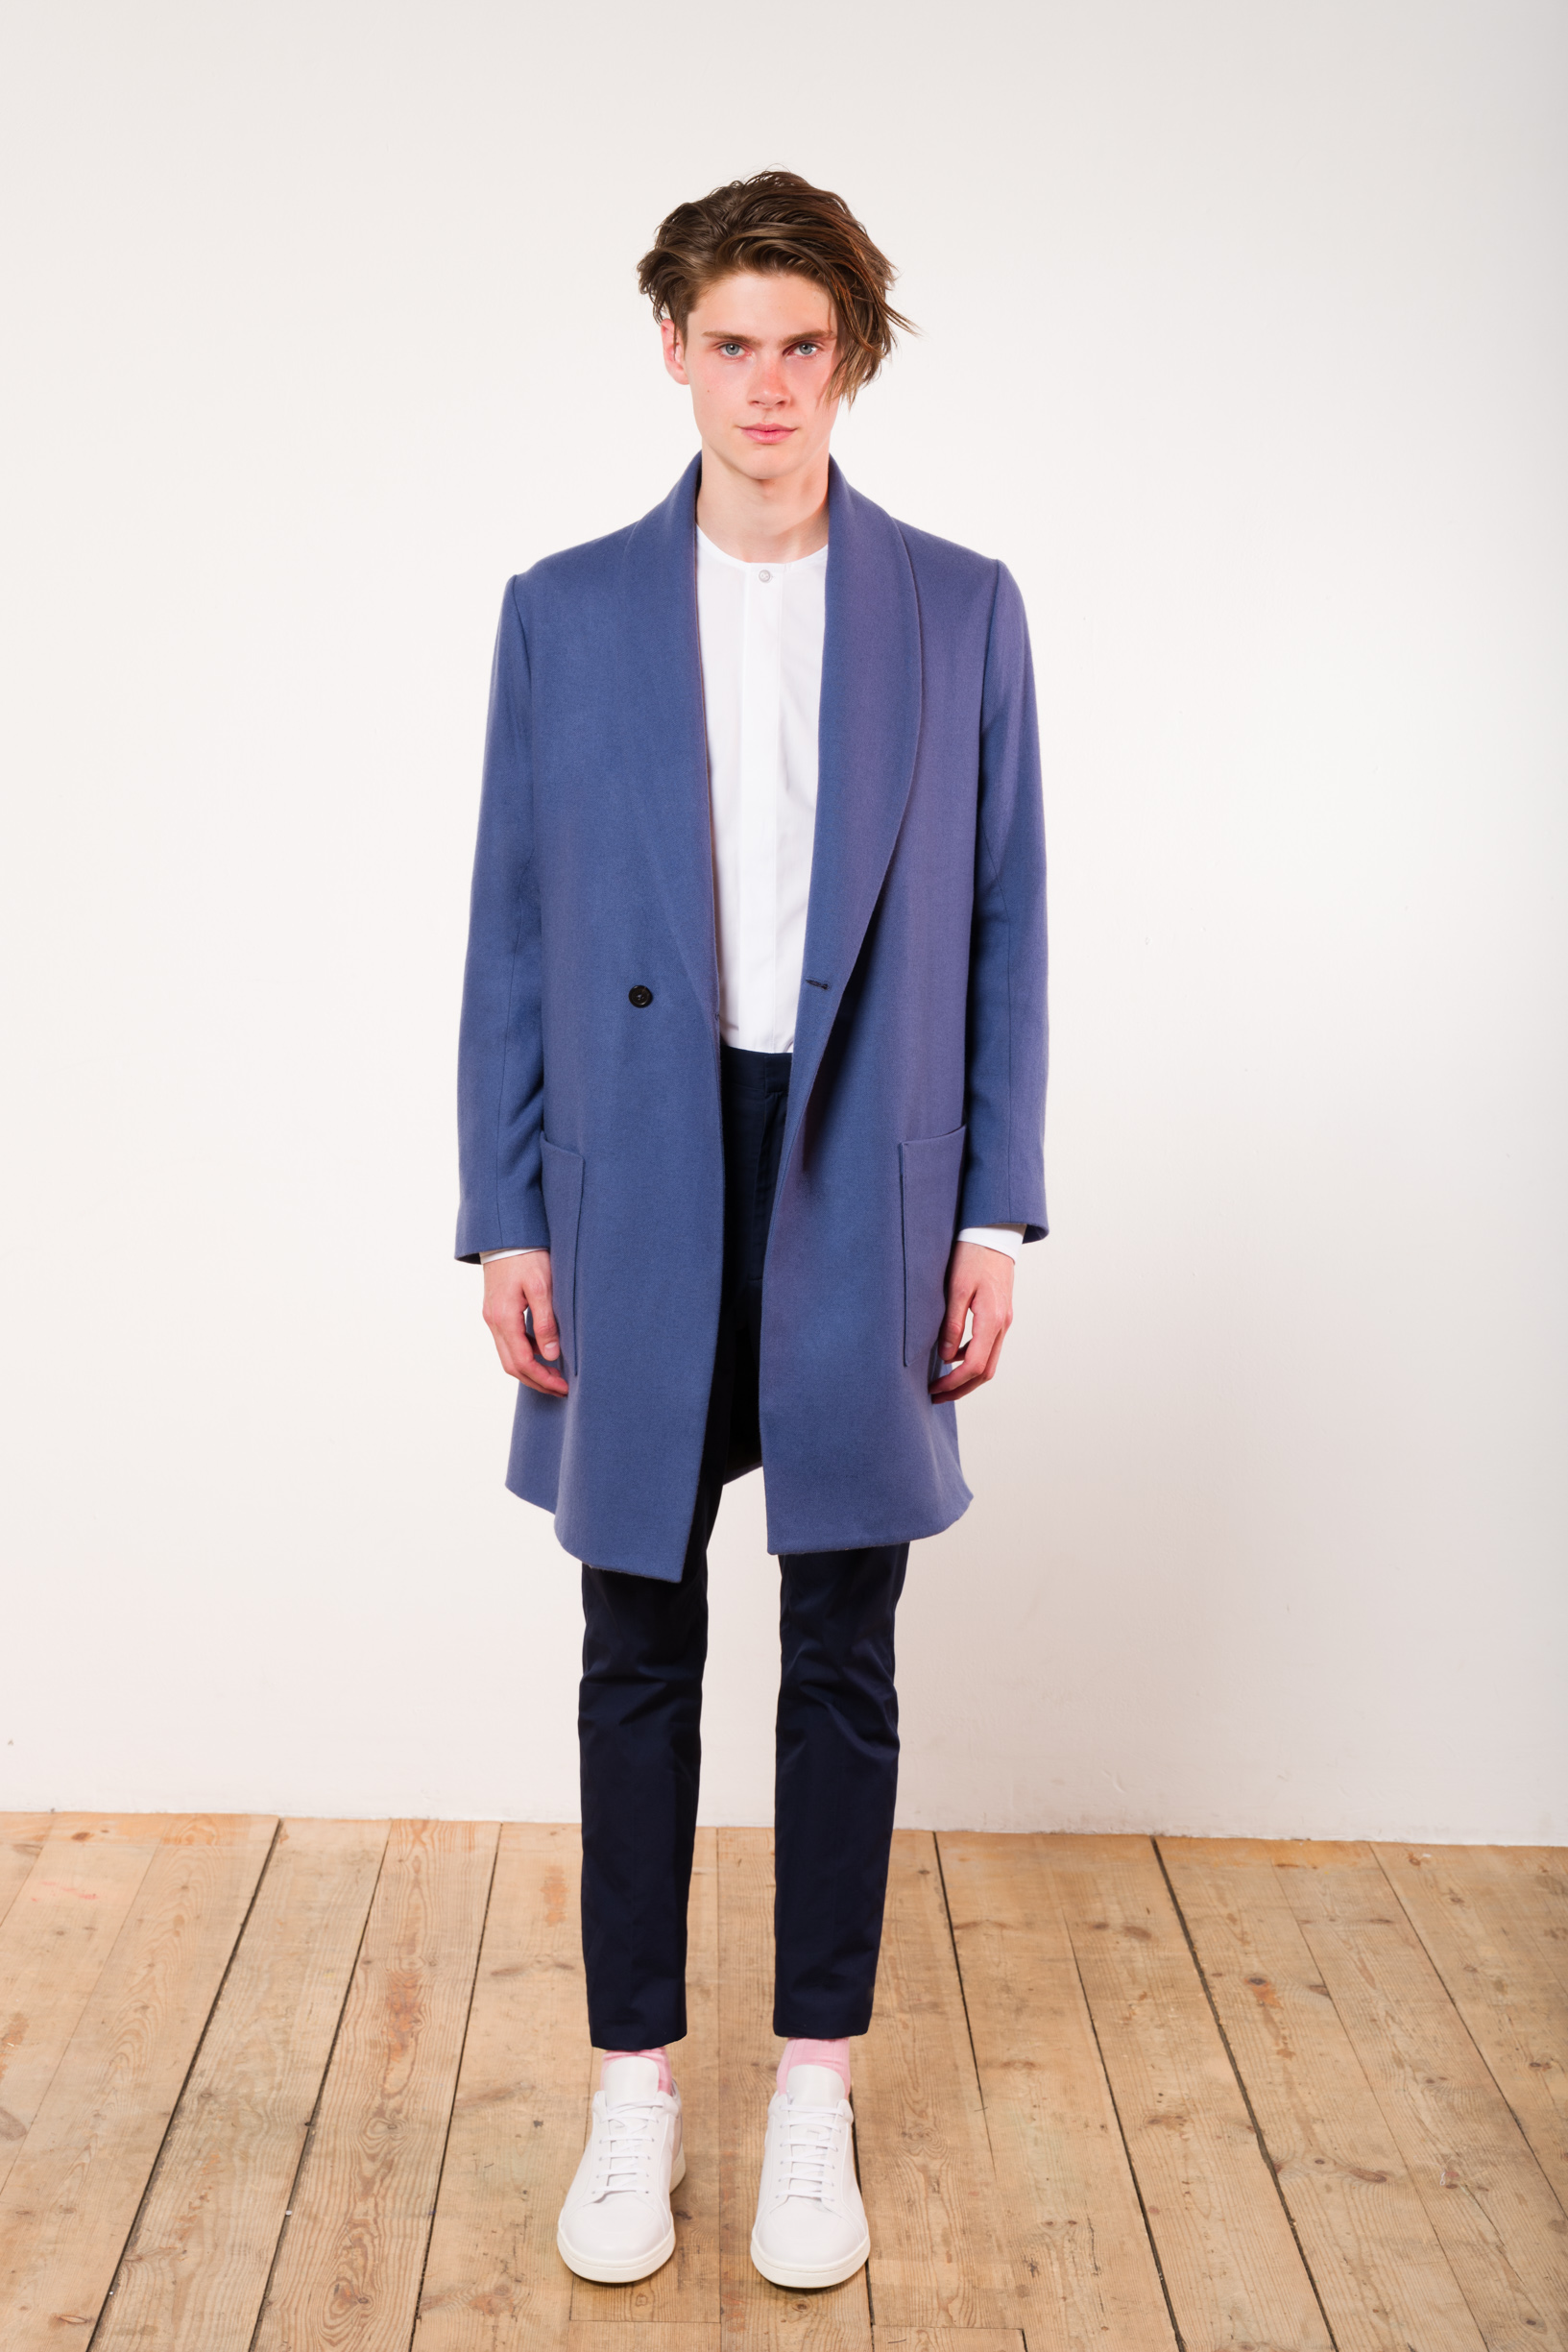 Robe coat cashmere cornflower blue No Collar shirt Shirting trousers